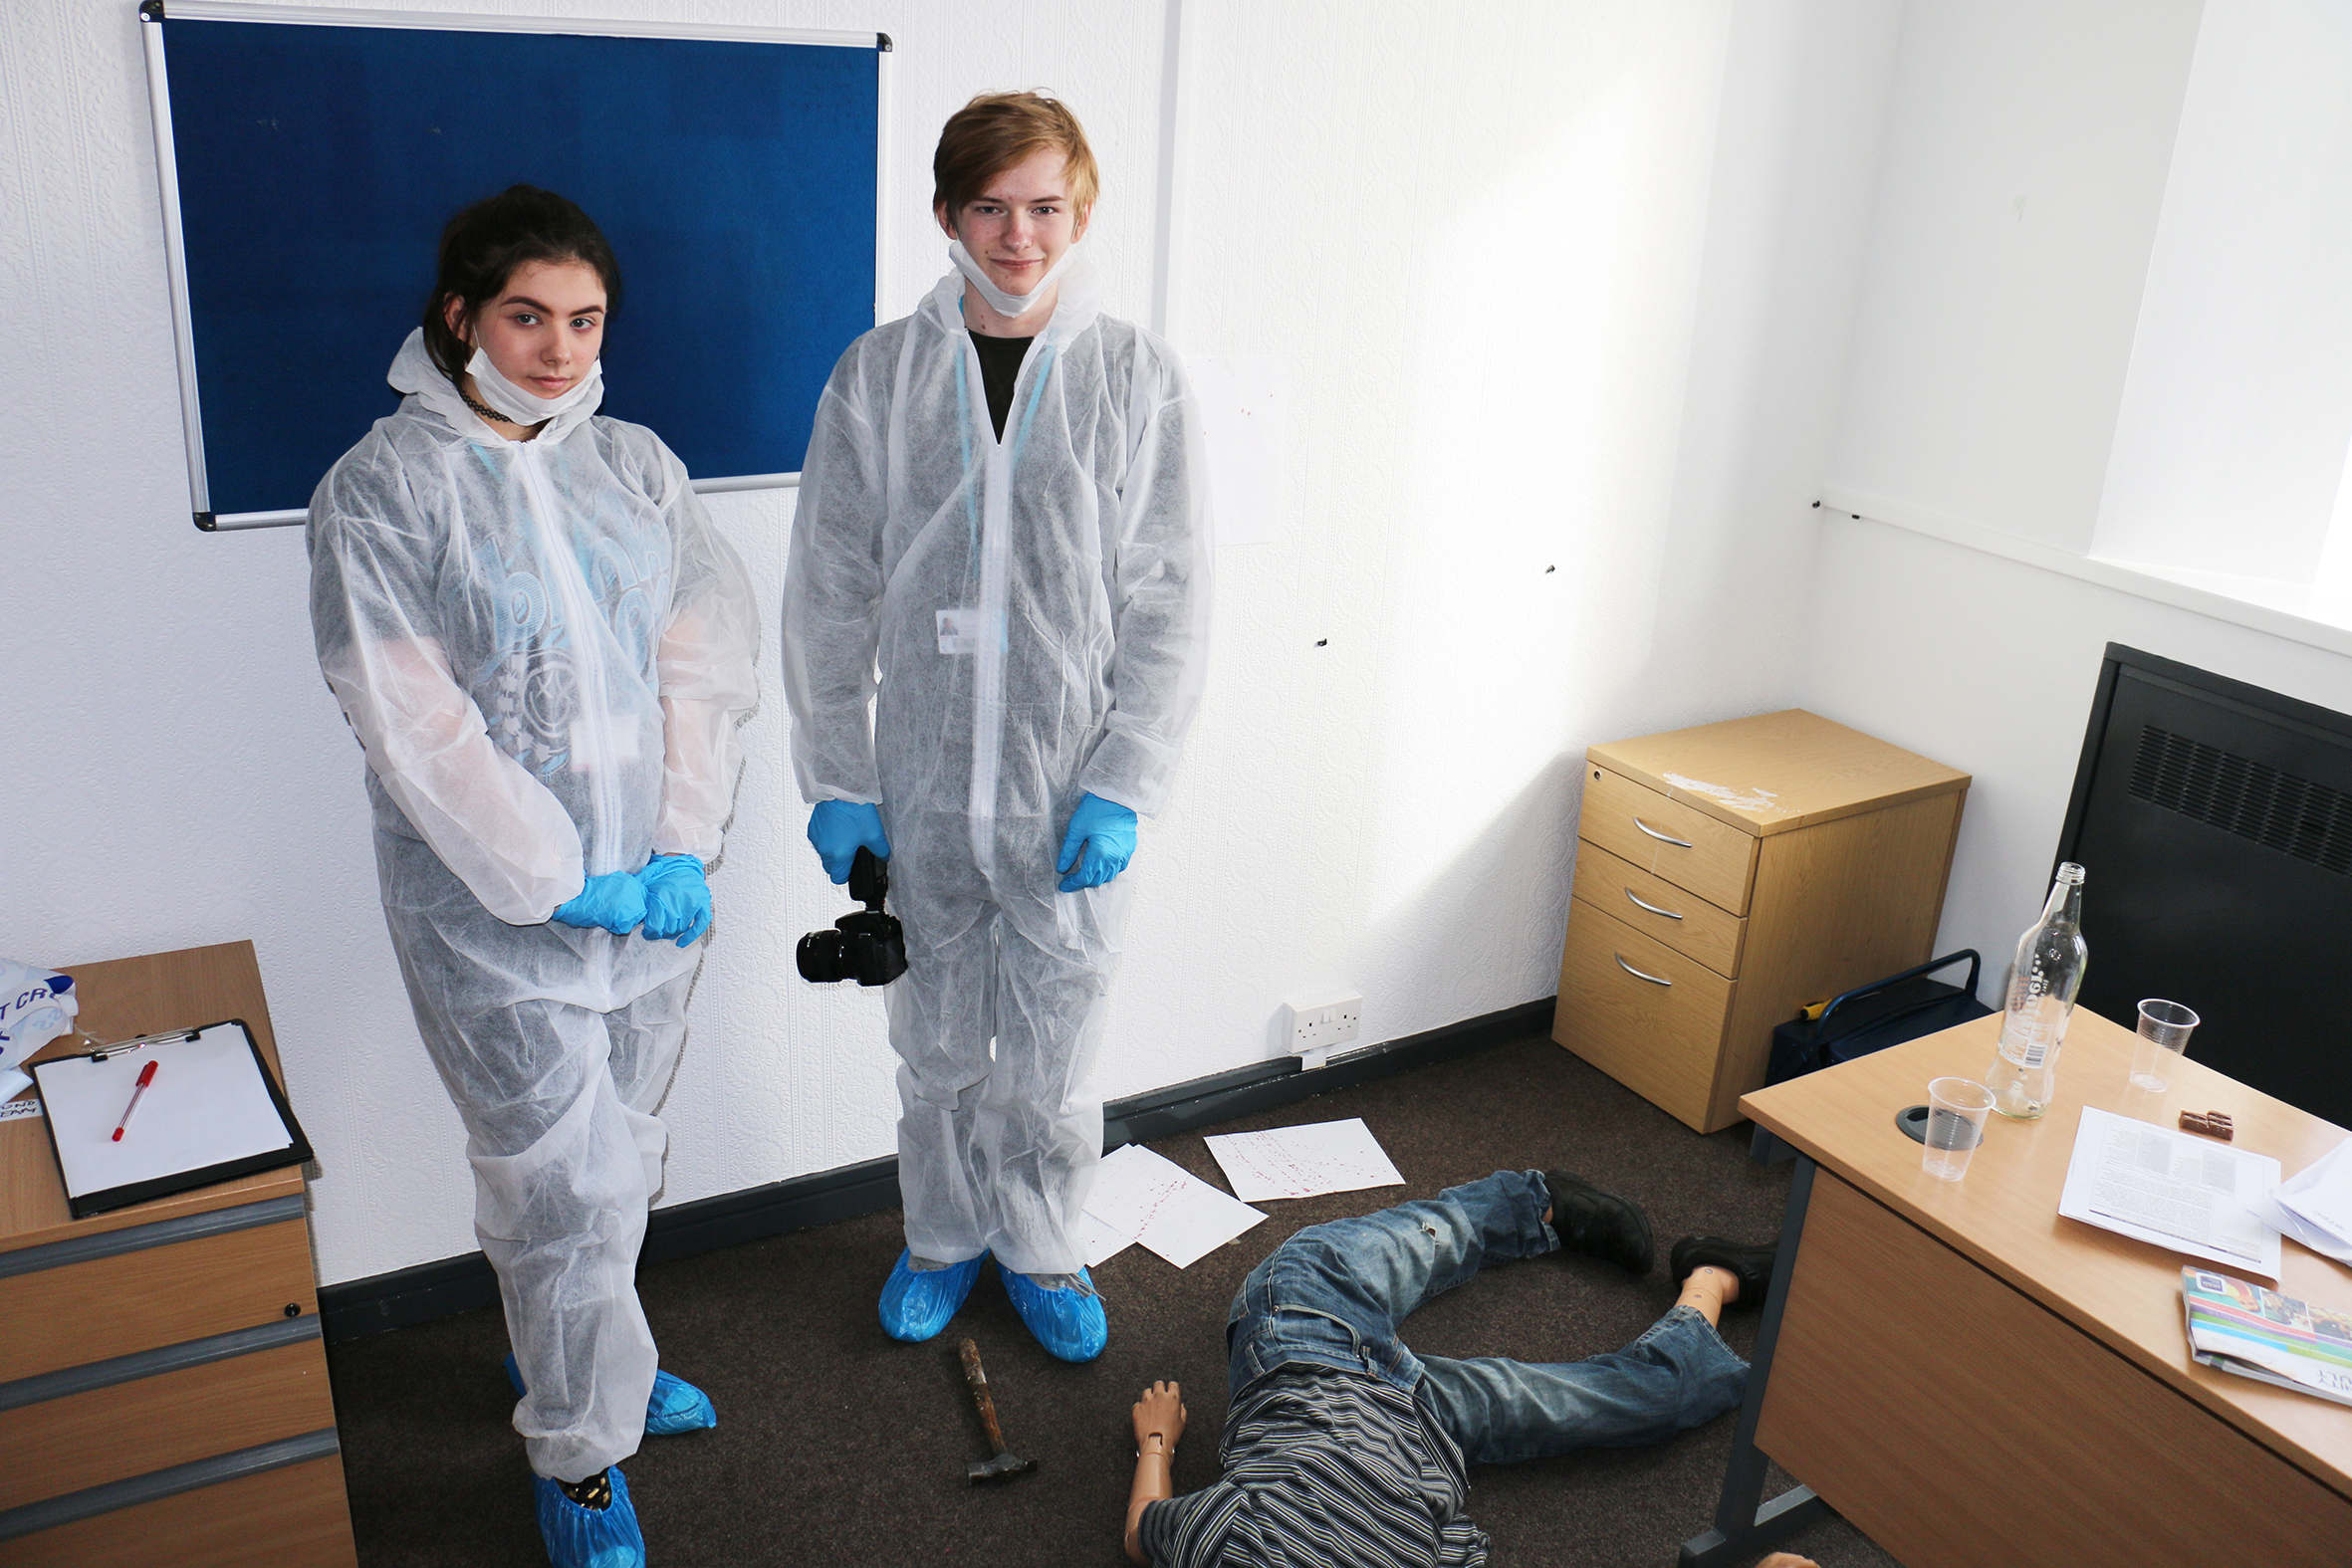 Budding forensics solve murder at college